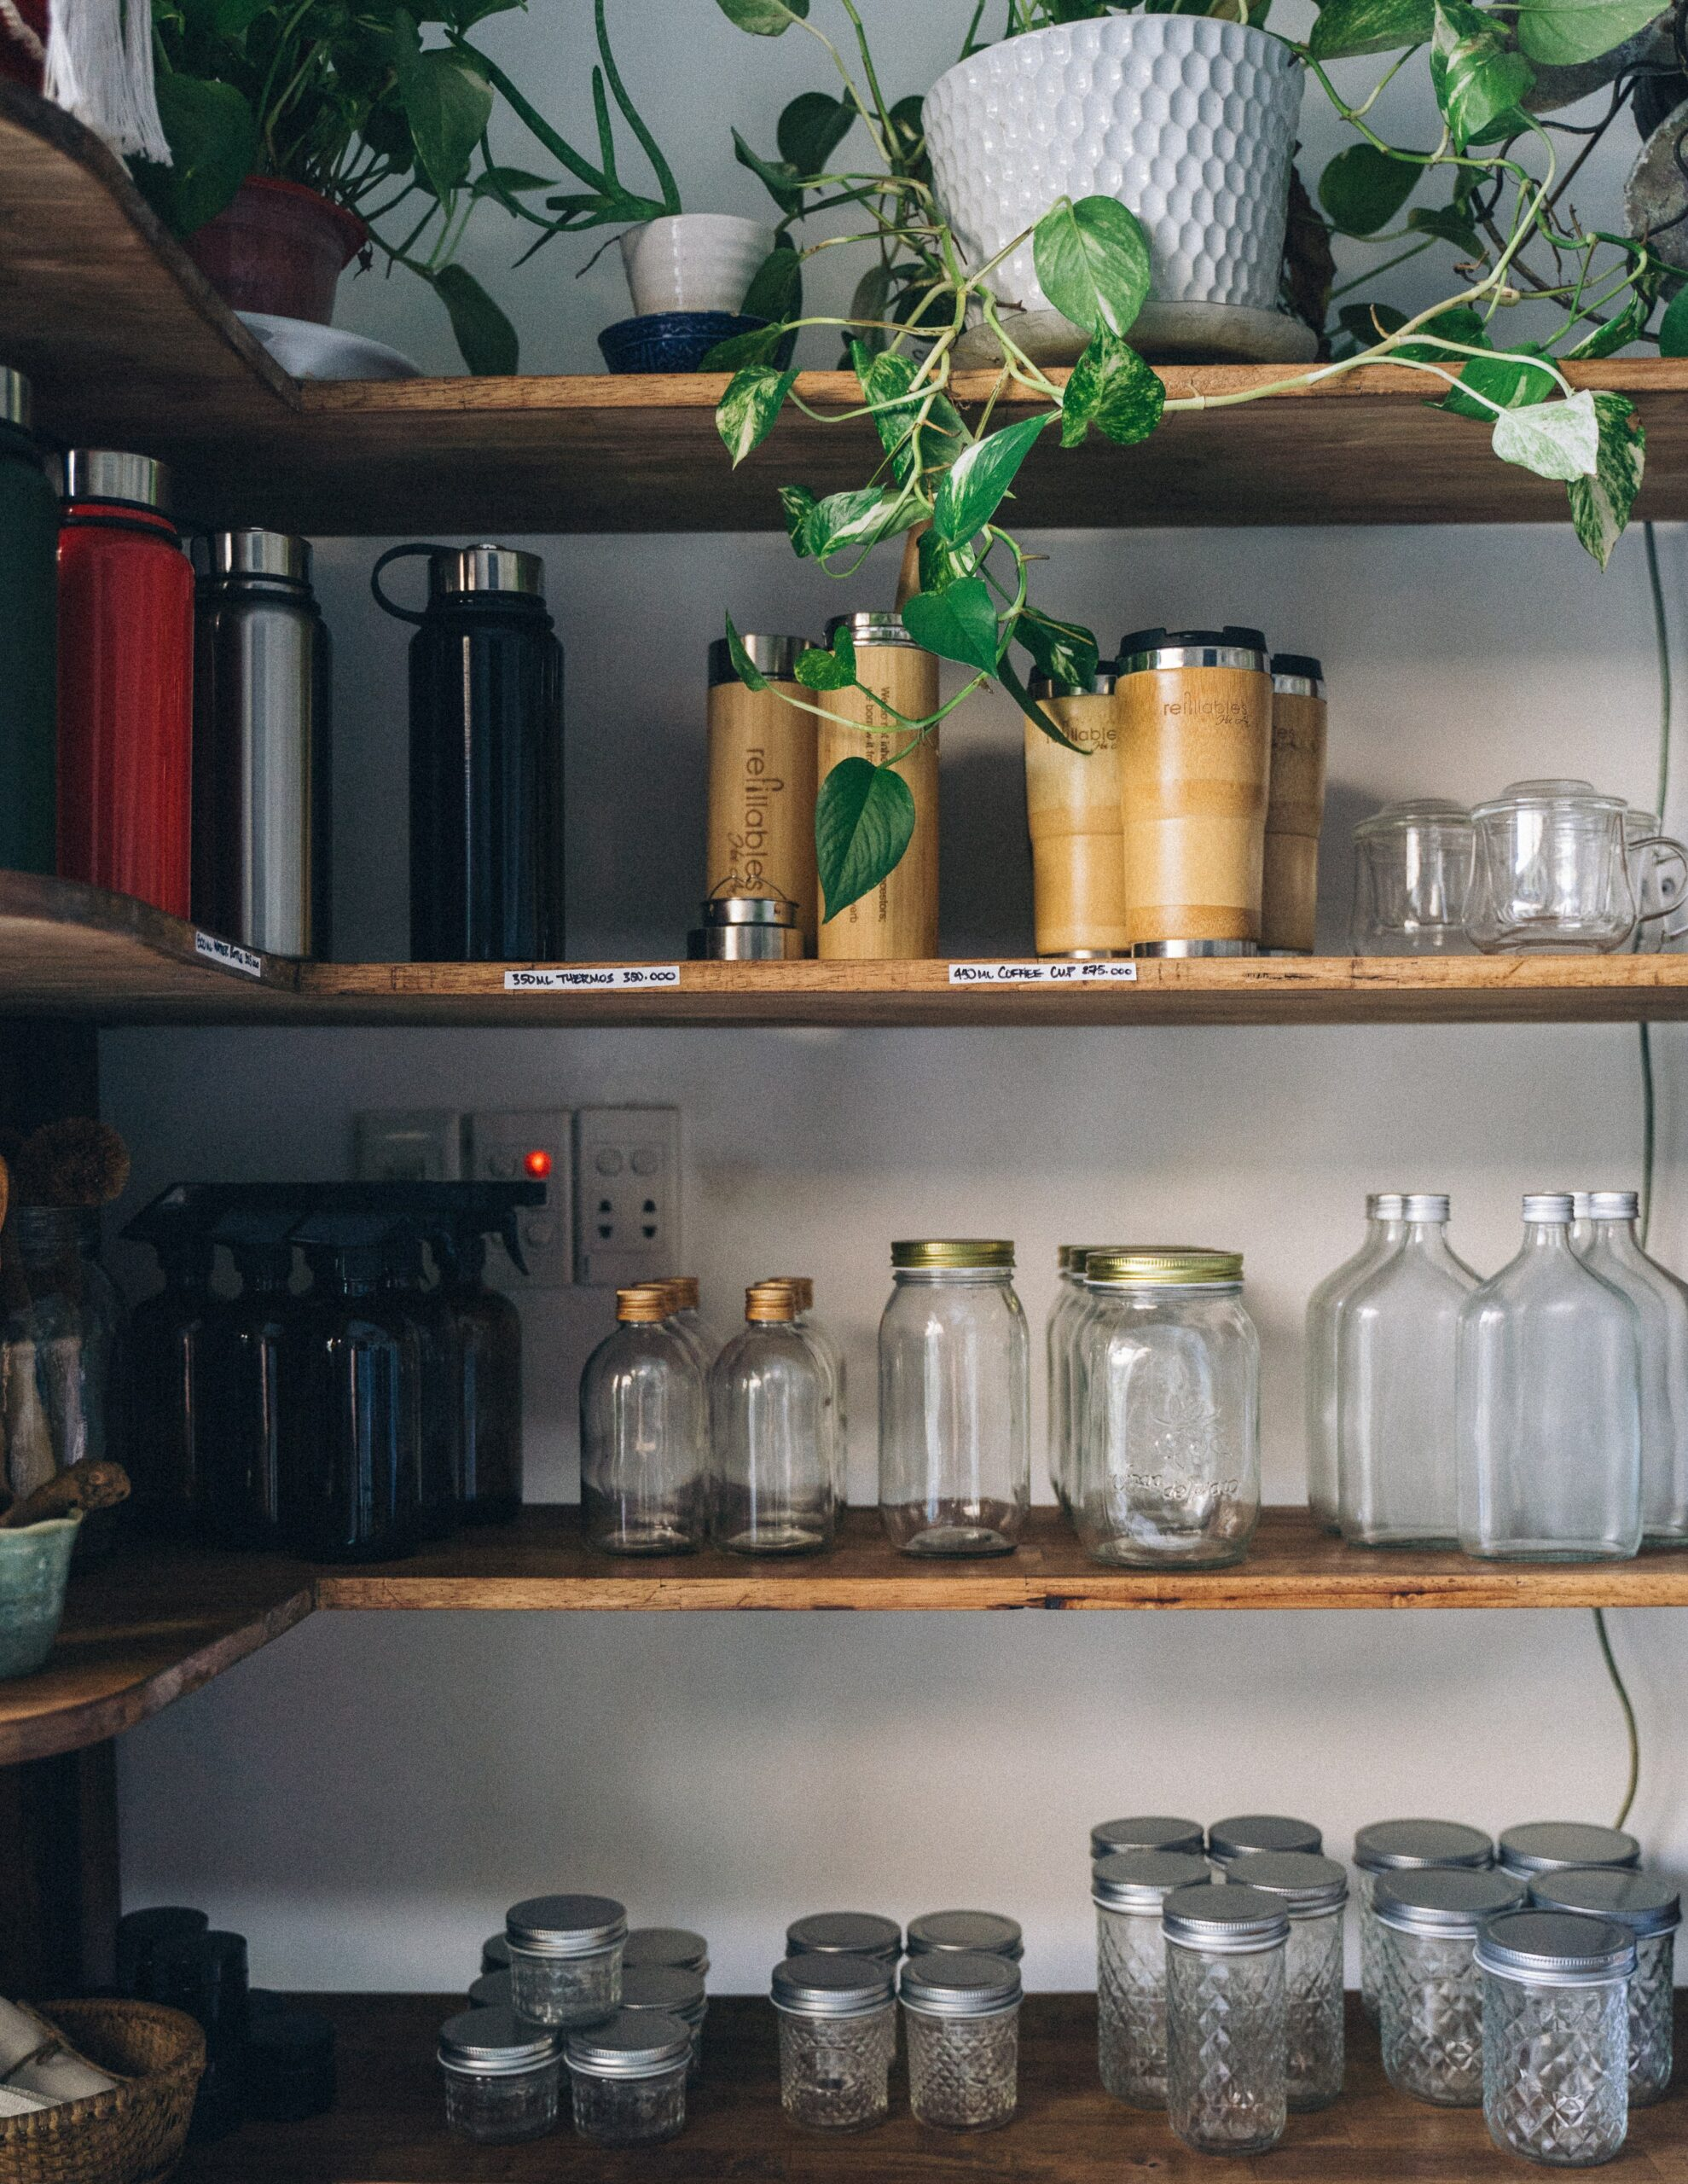 Decorating Ideas for a More Environmentally-Friendly Home